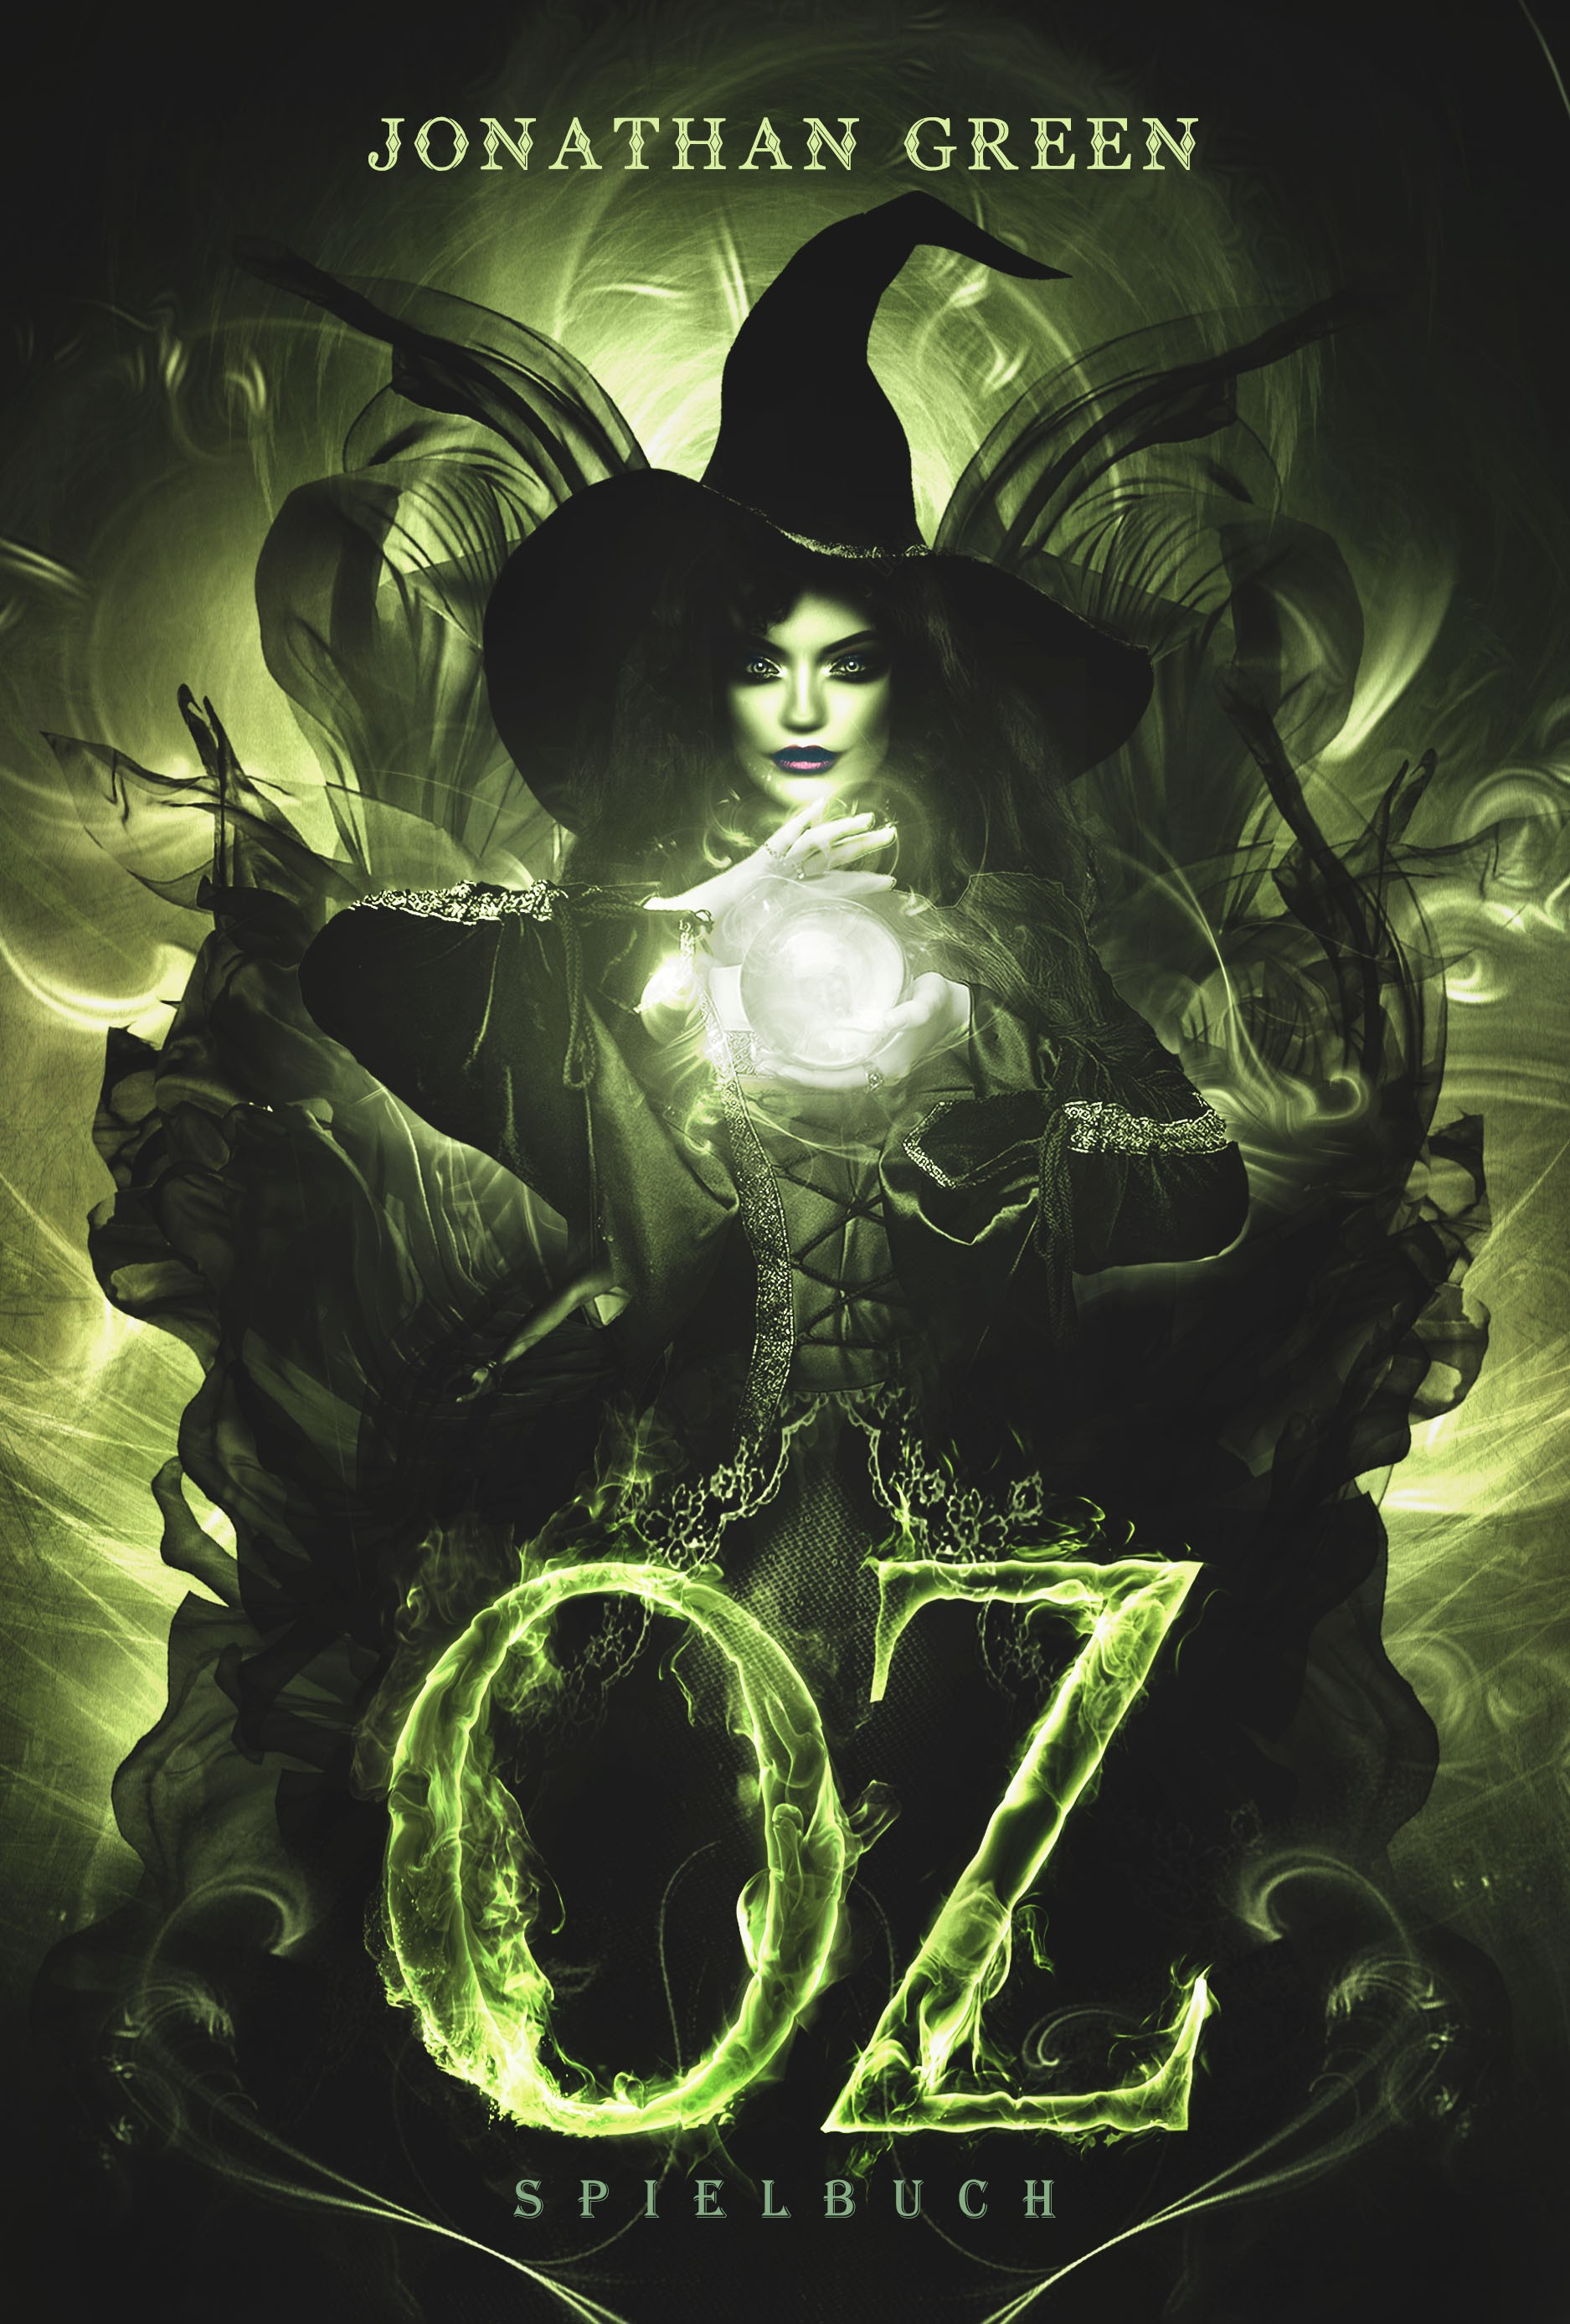 """Create an eye-catching cover for a game-book-adaptation of """"The Wizzard of Oz"""""""